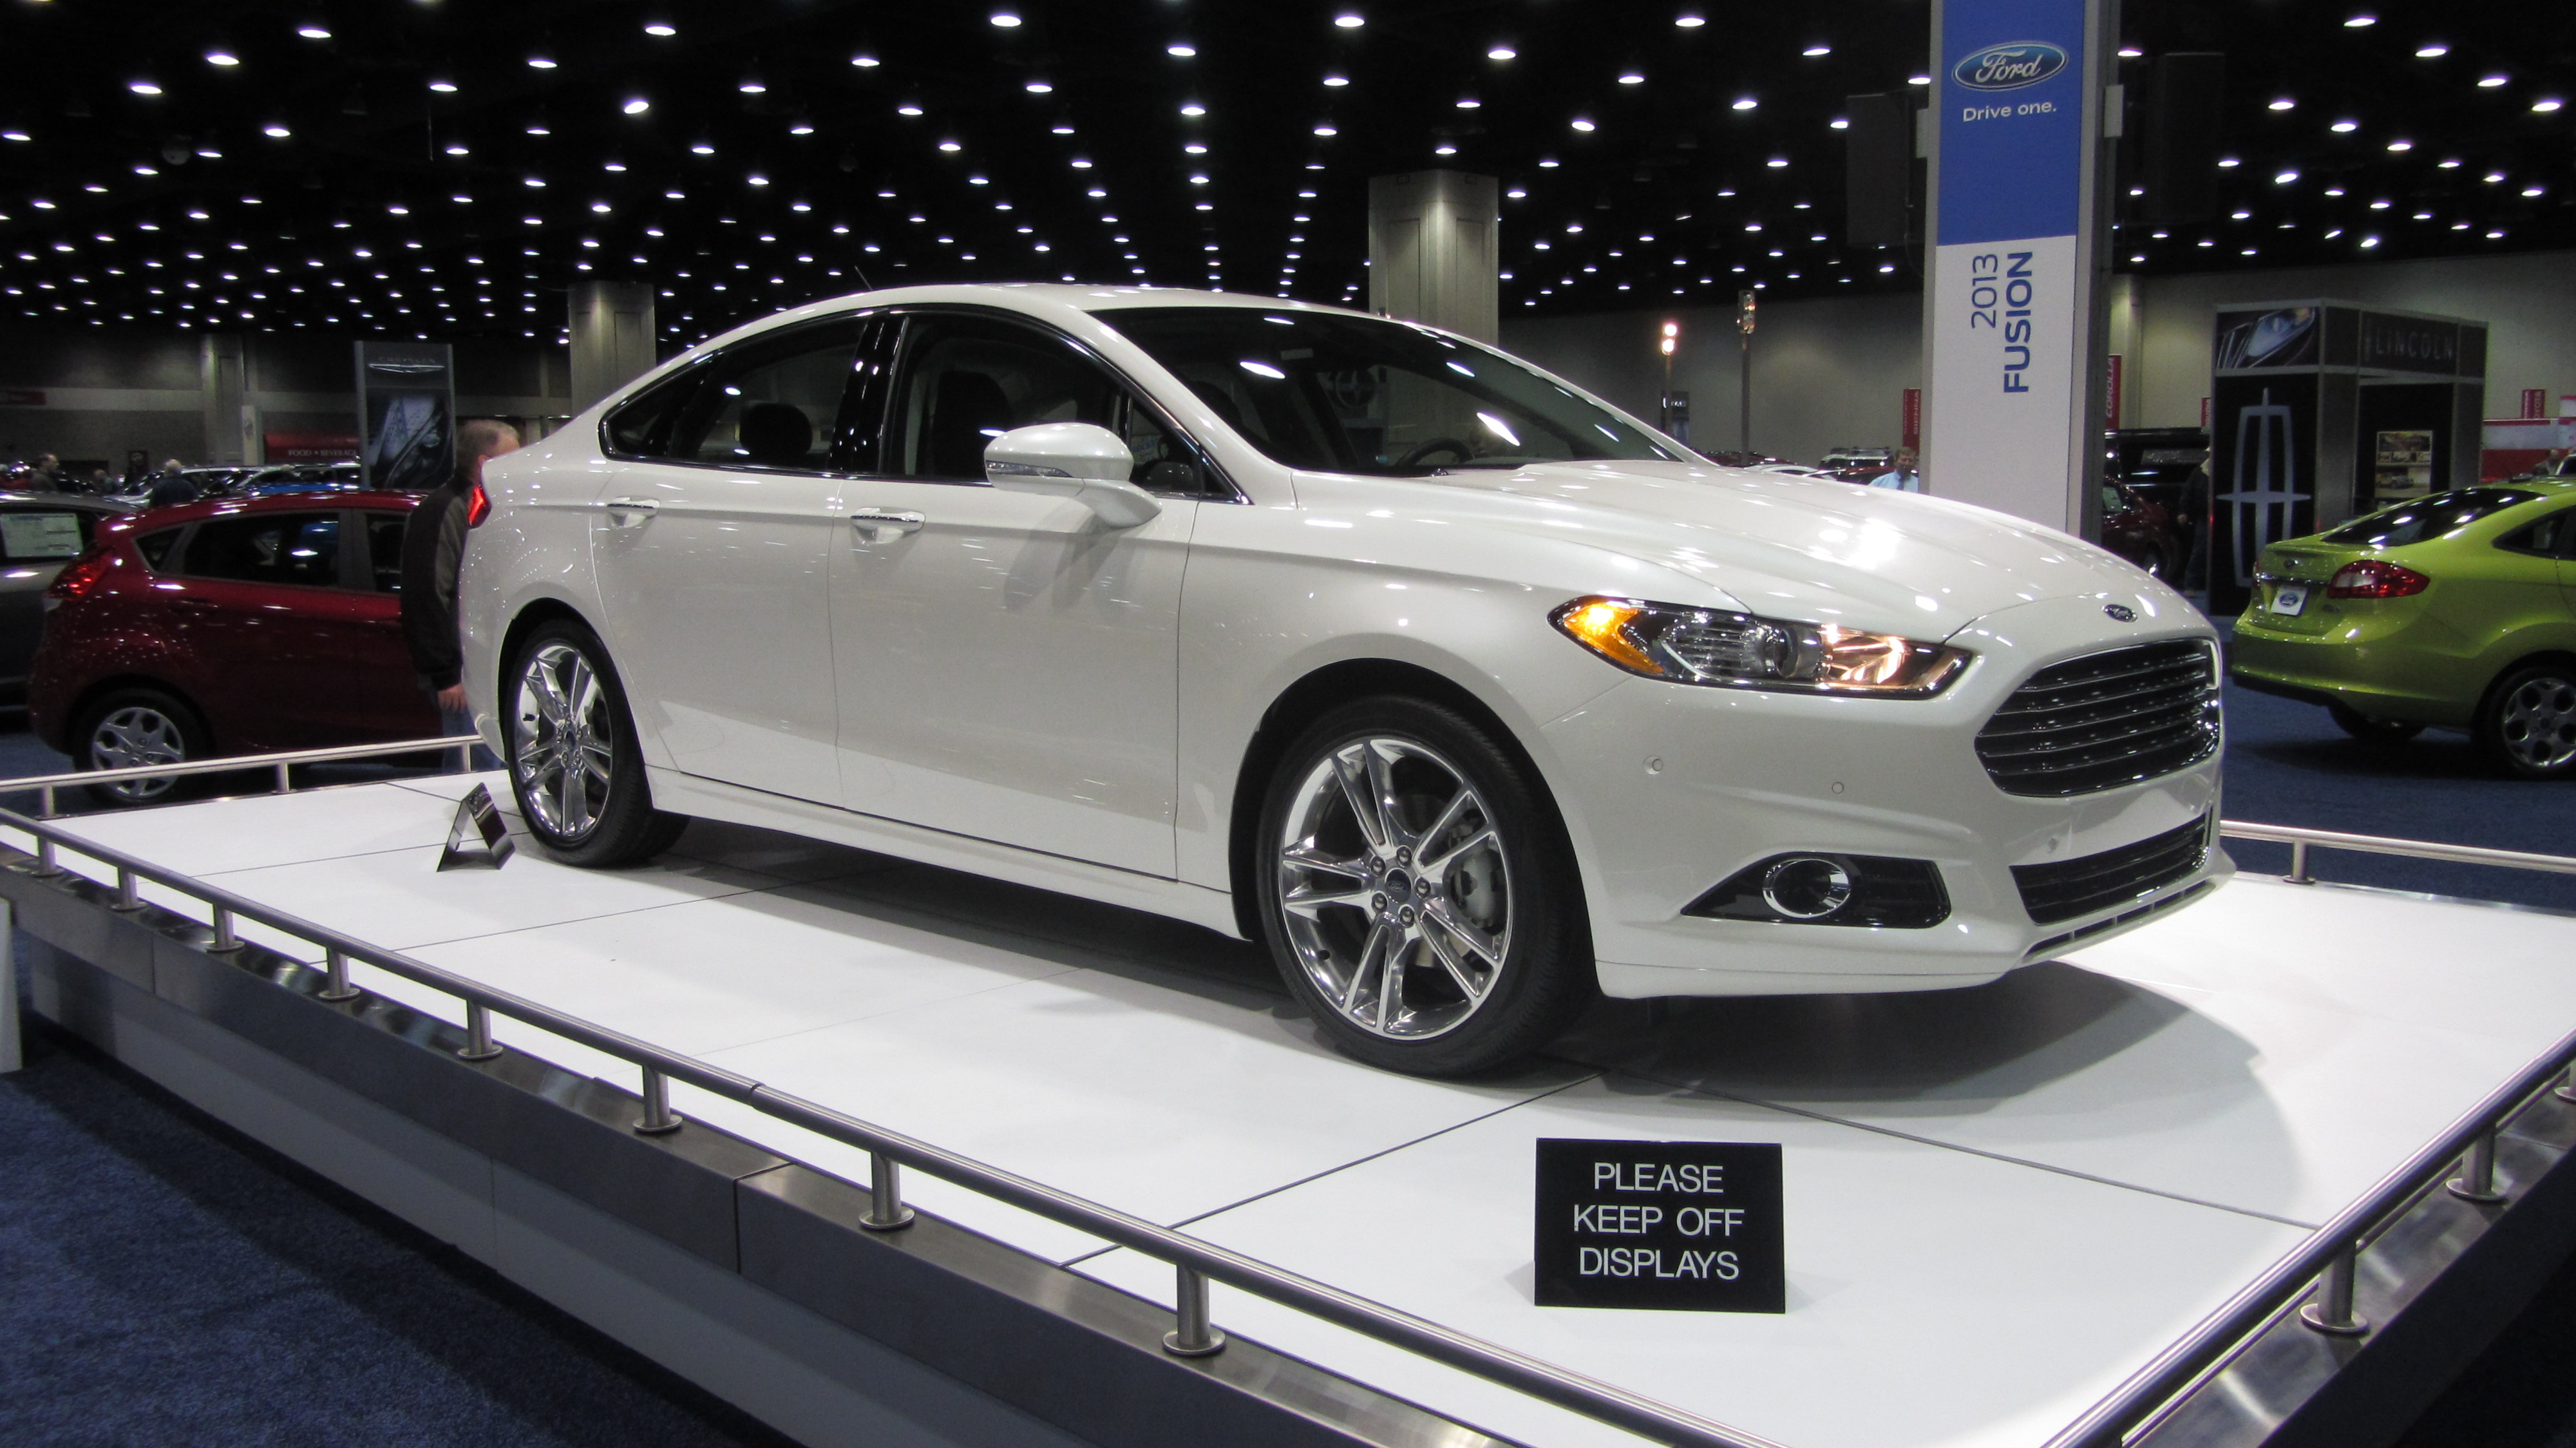 2013 ford fusion titanium by jeffry747 2013 ford fusion titanium by jeffry747 - 2013 Ford Fusion Titanium